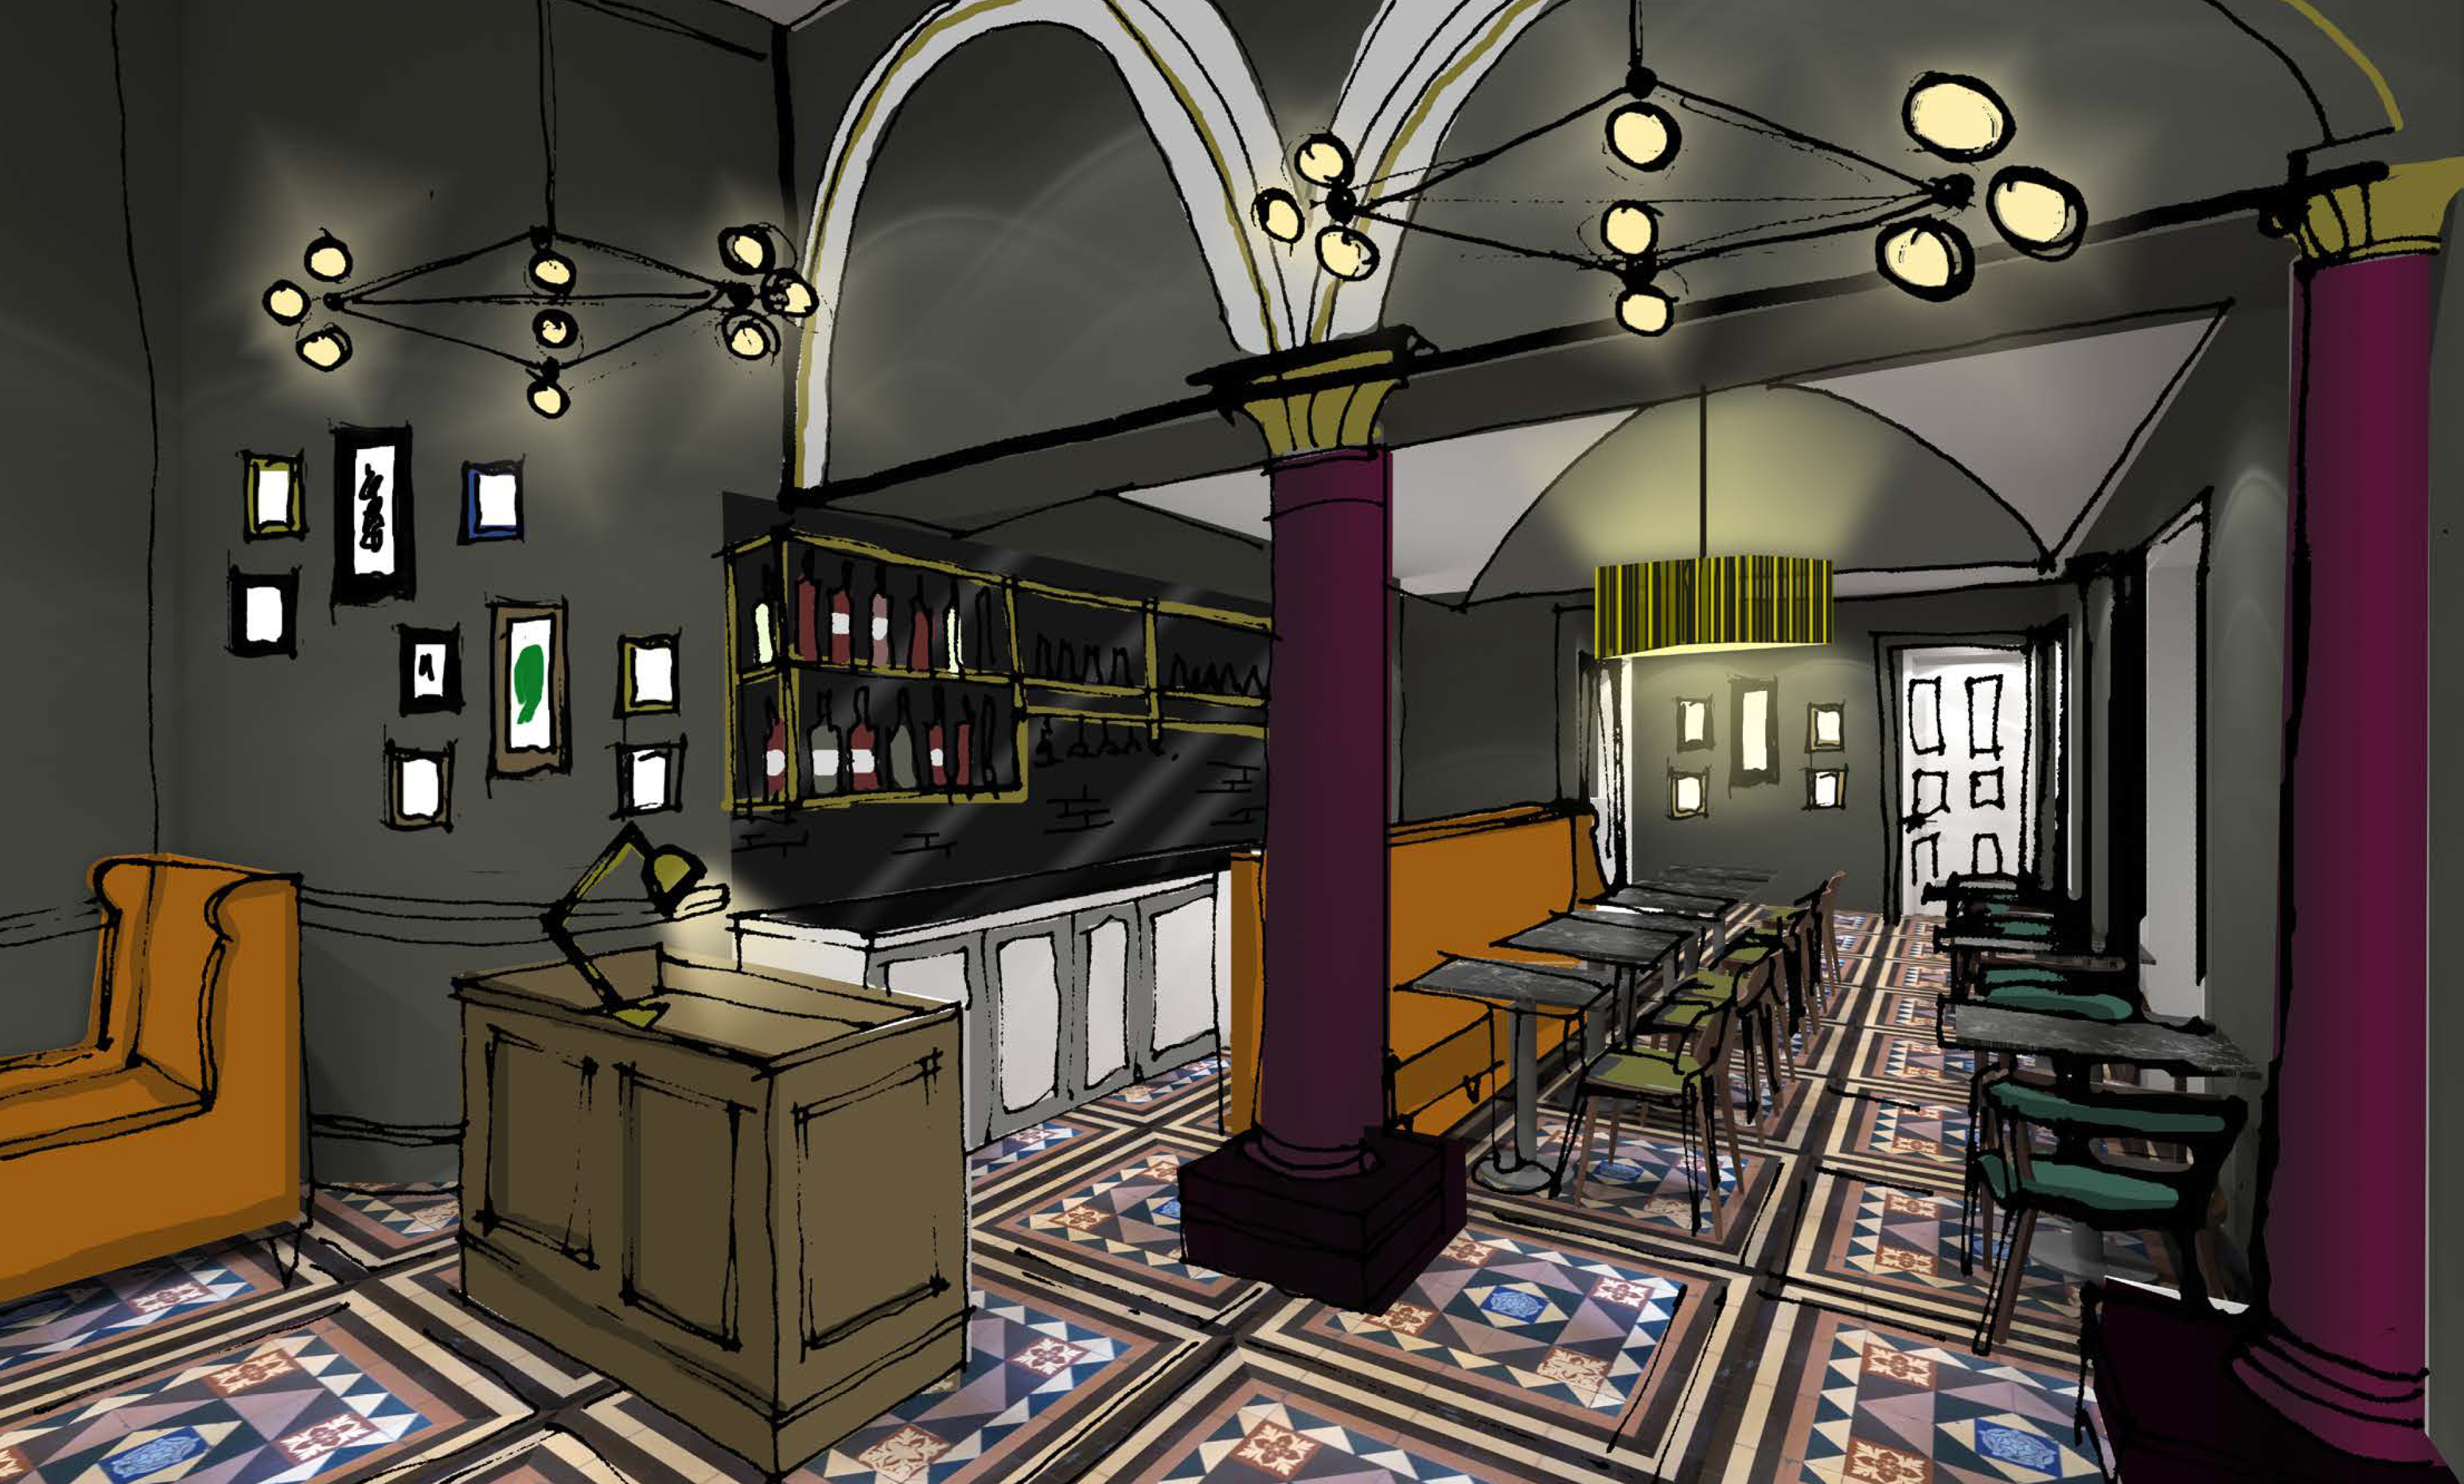 Pizzaexpress redesigns quot out of touch interiors to take on